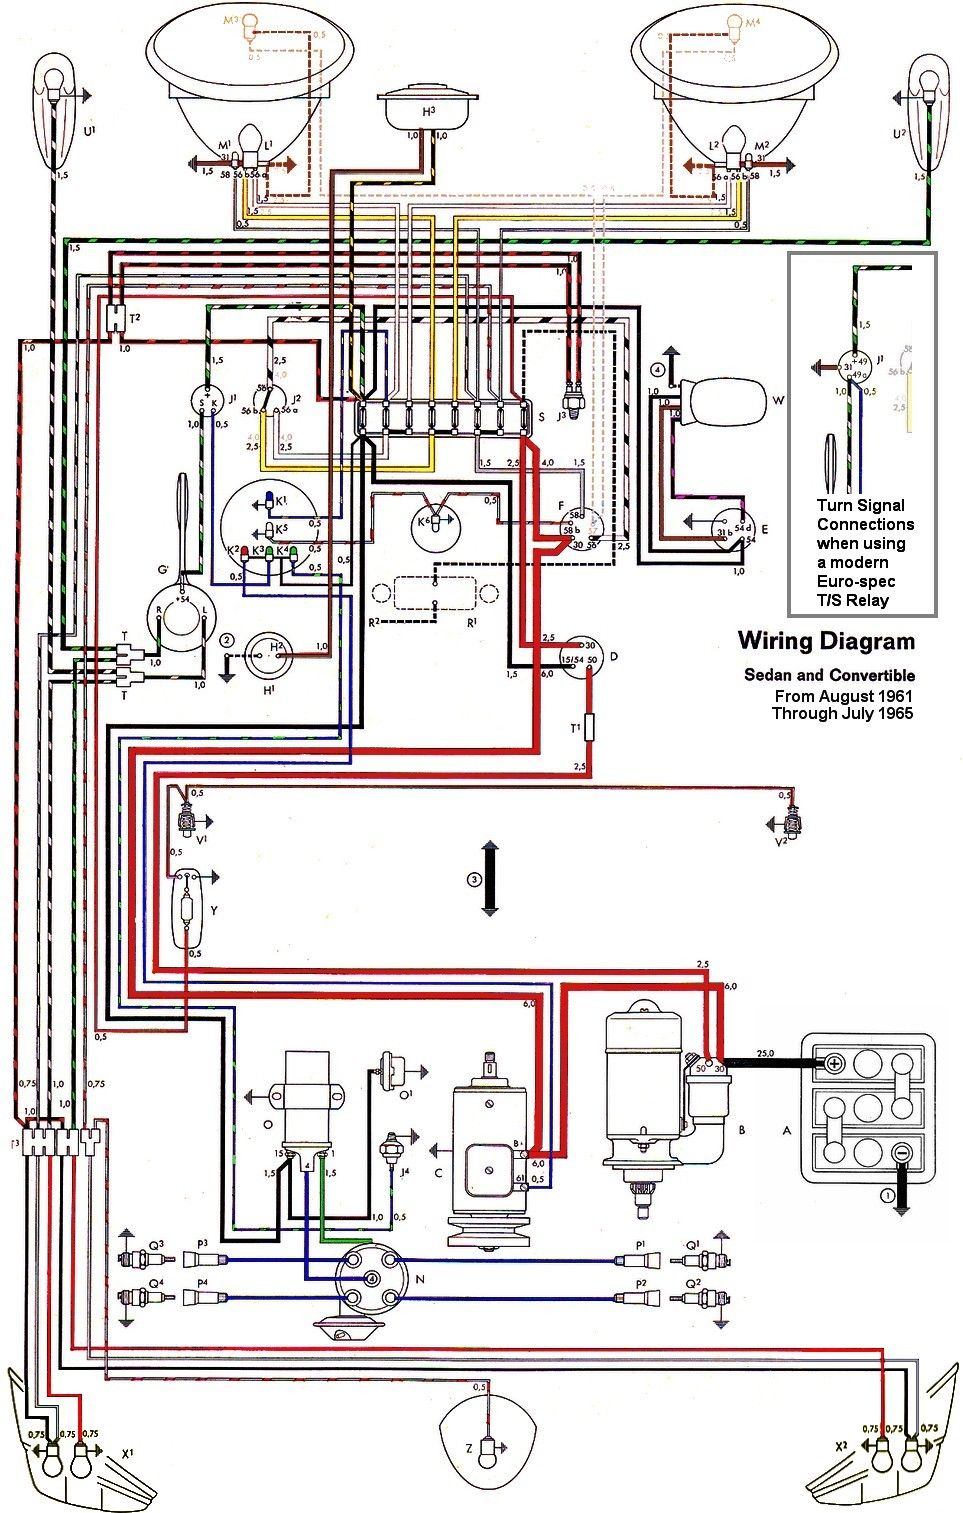 2235472c26e9b61112a110100d6ddea3 wiring diagram in color 1964 vw bug, beetle, convertible the Basic Electrical Wiring Diagrams at virtualis.co